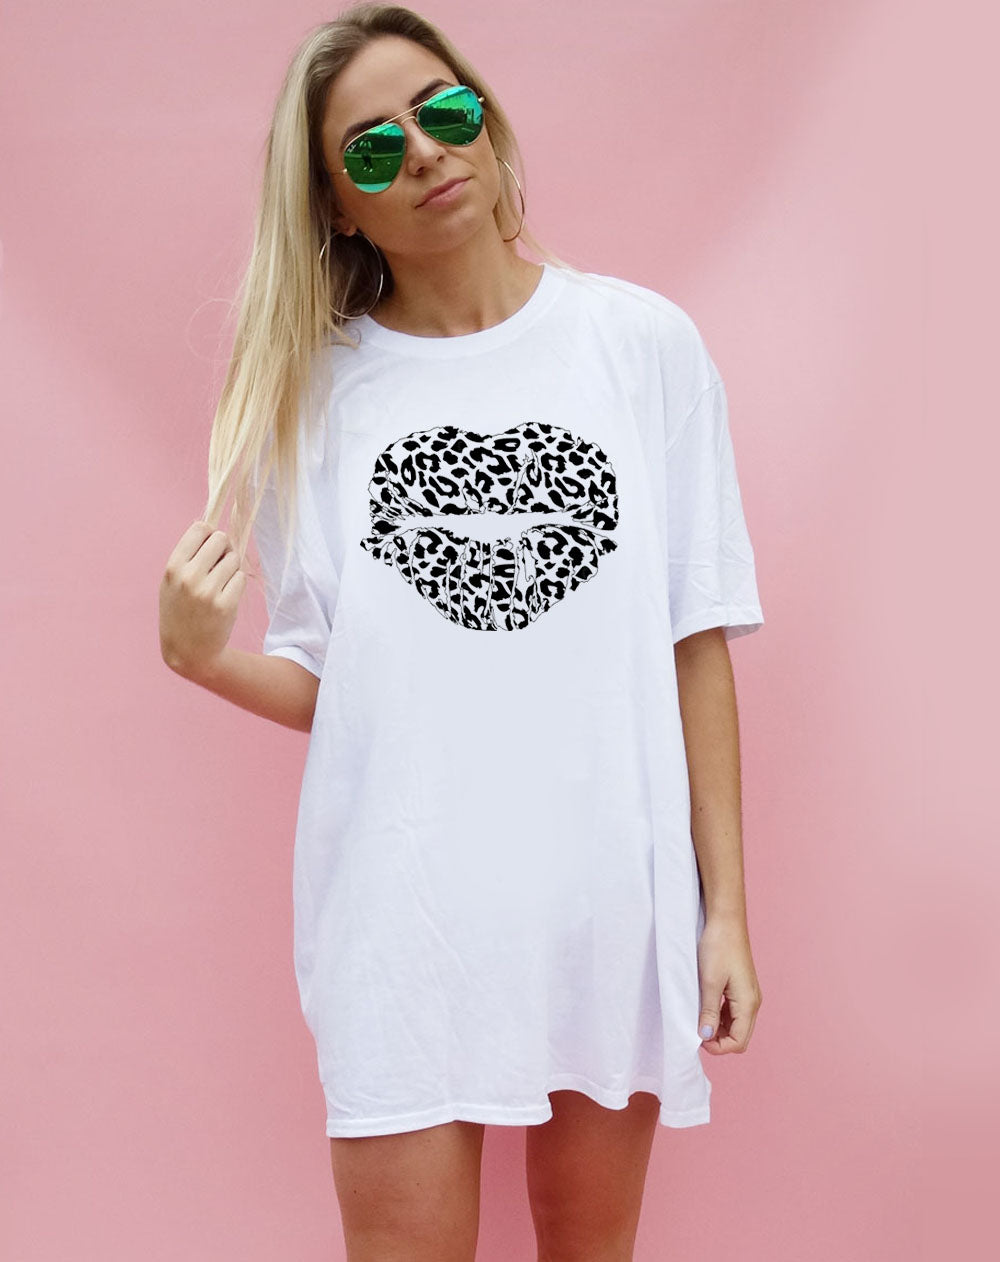 White Oversized Tshirt with Black & White Leopard Lip Kiss